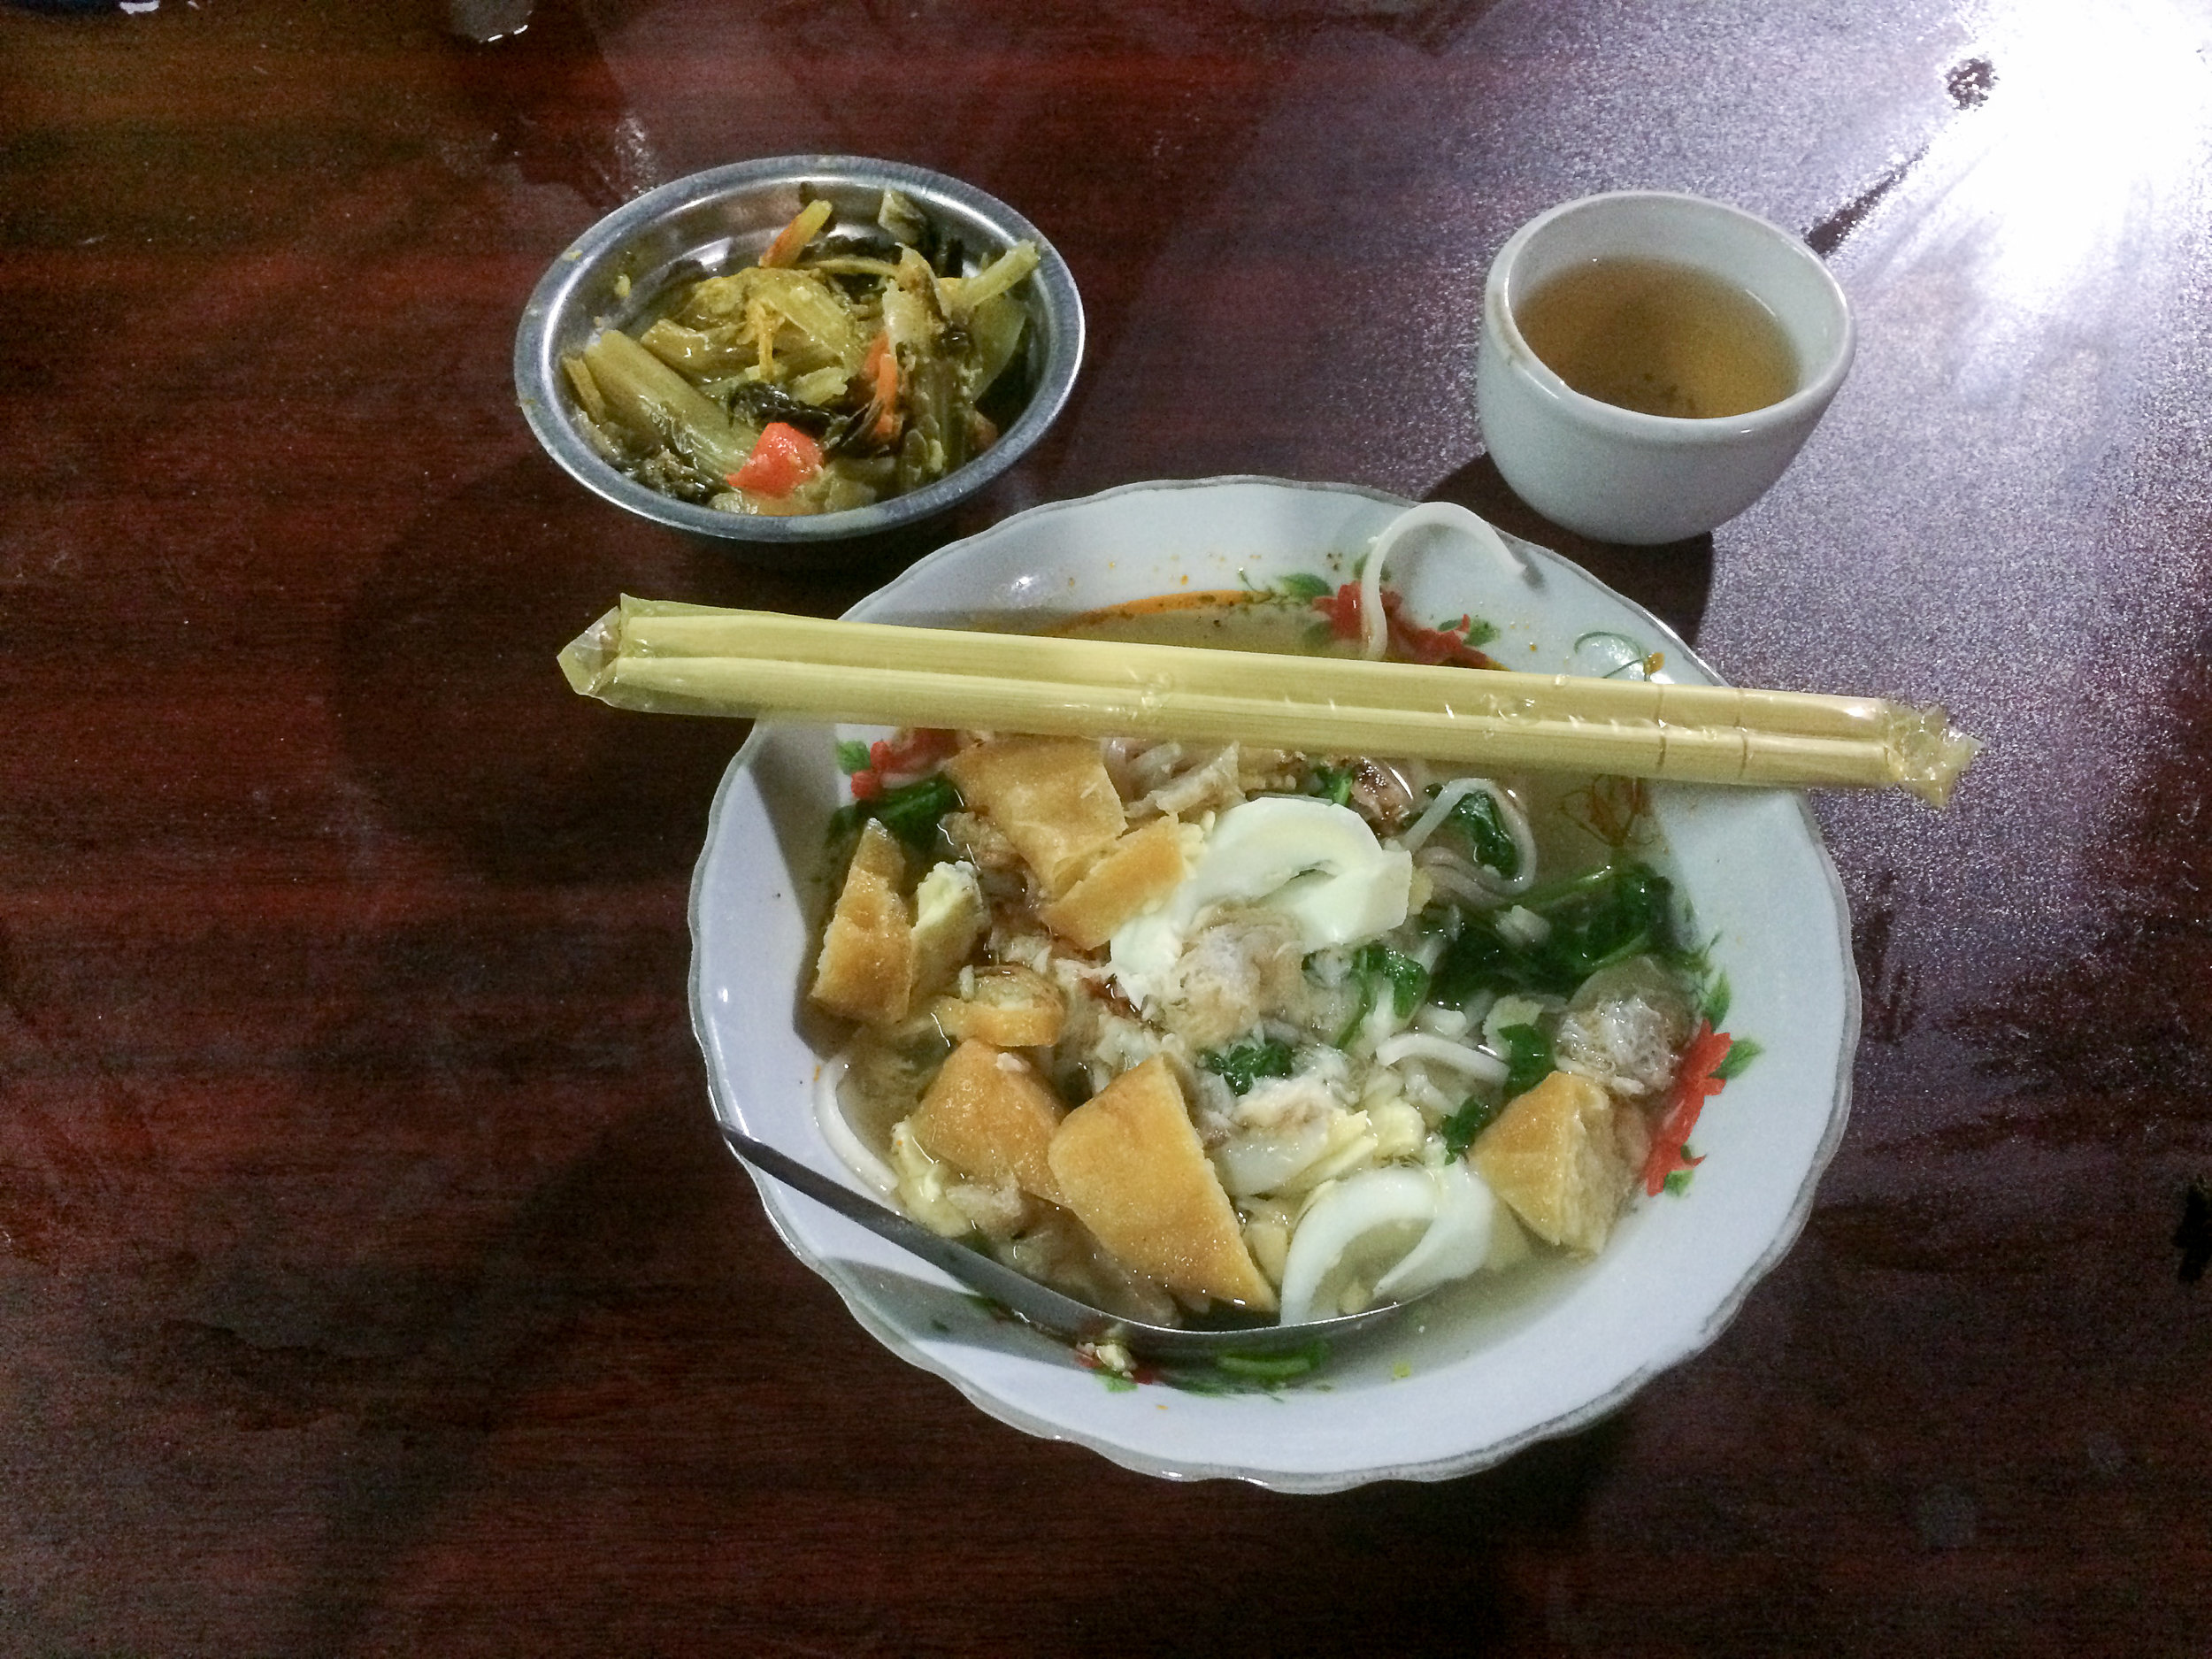 Delicious soup and tea! Note the small bowl of pickled vegetables - a side dish that is served with almost everything in Myanmar, even breakfast.